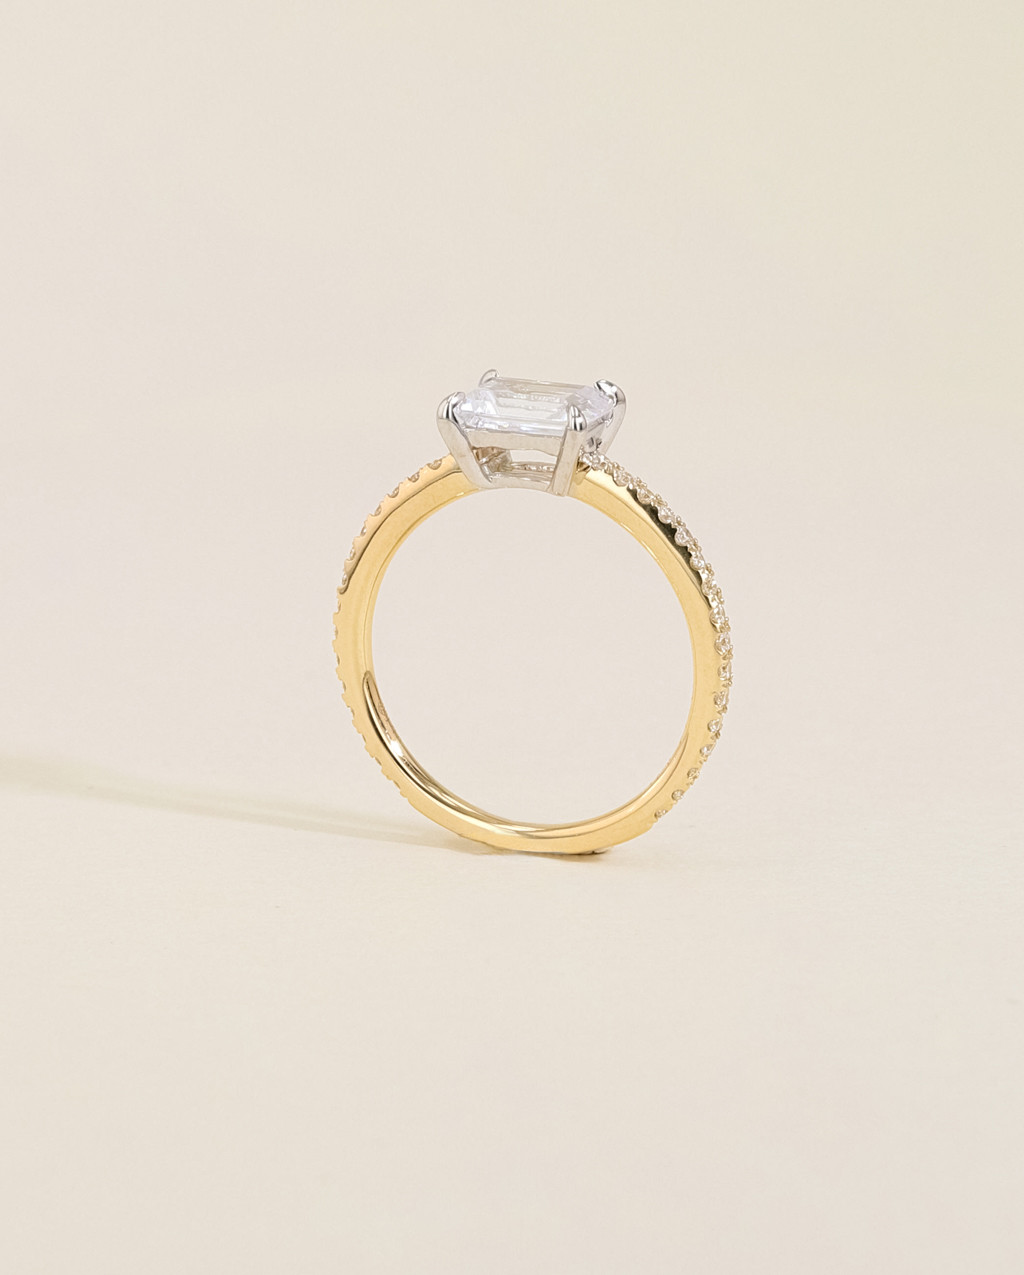 Solitaire Pavé Diamond Engagement Ring